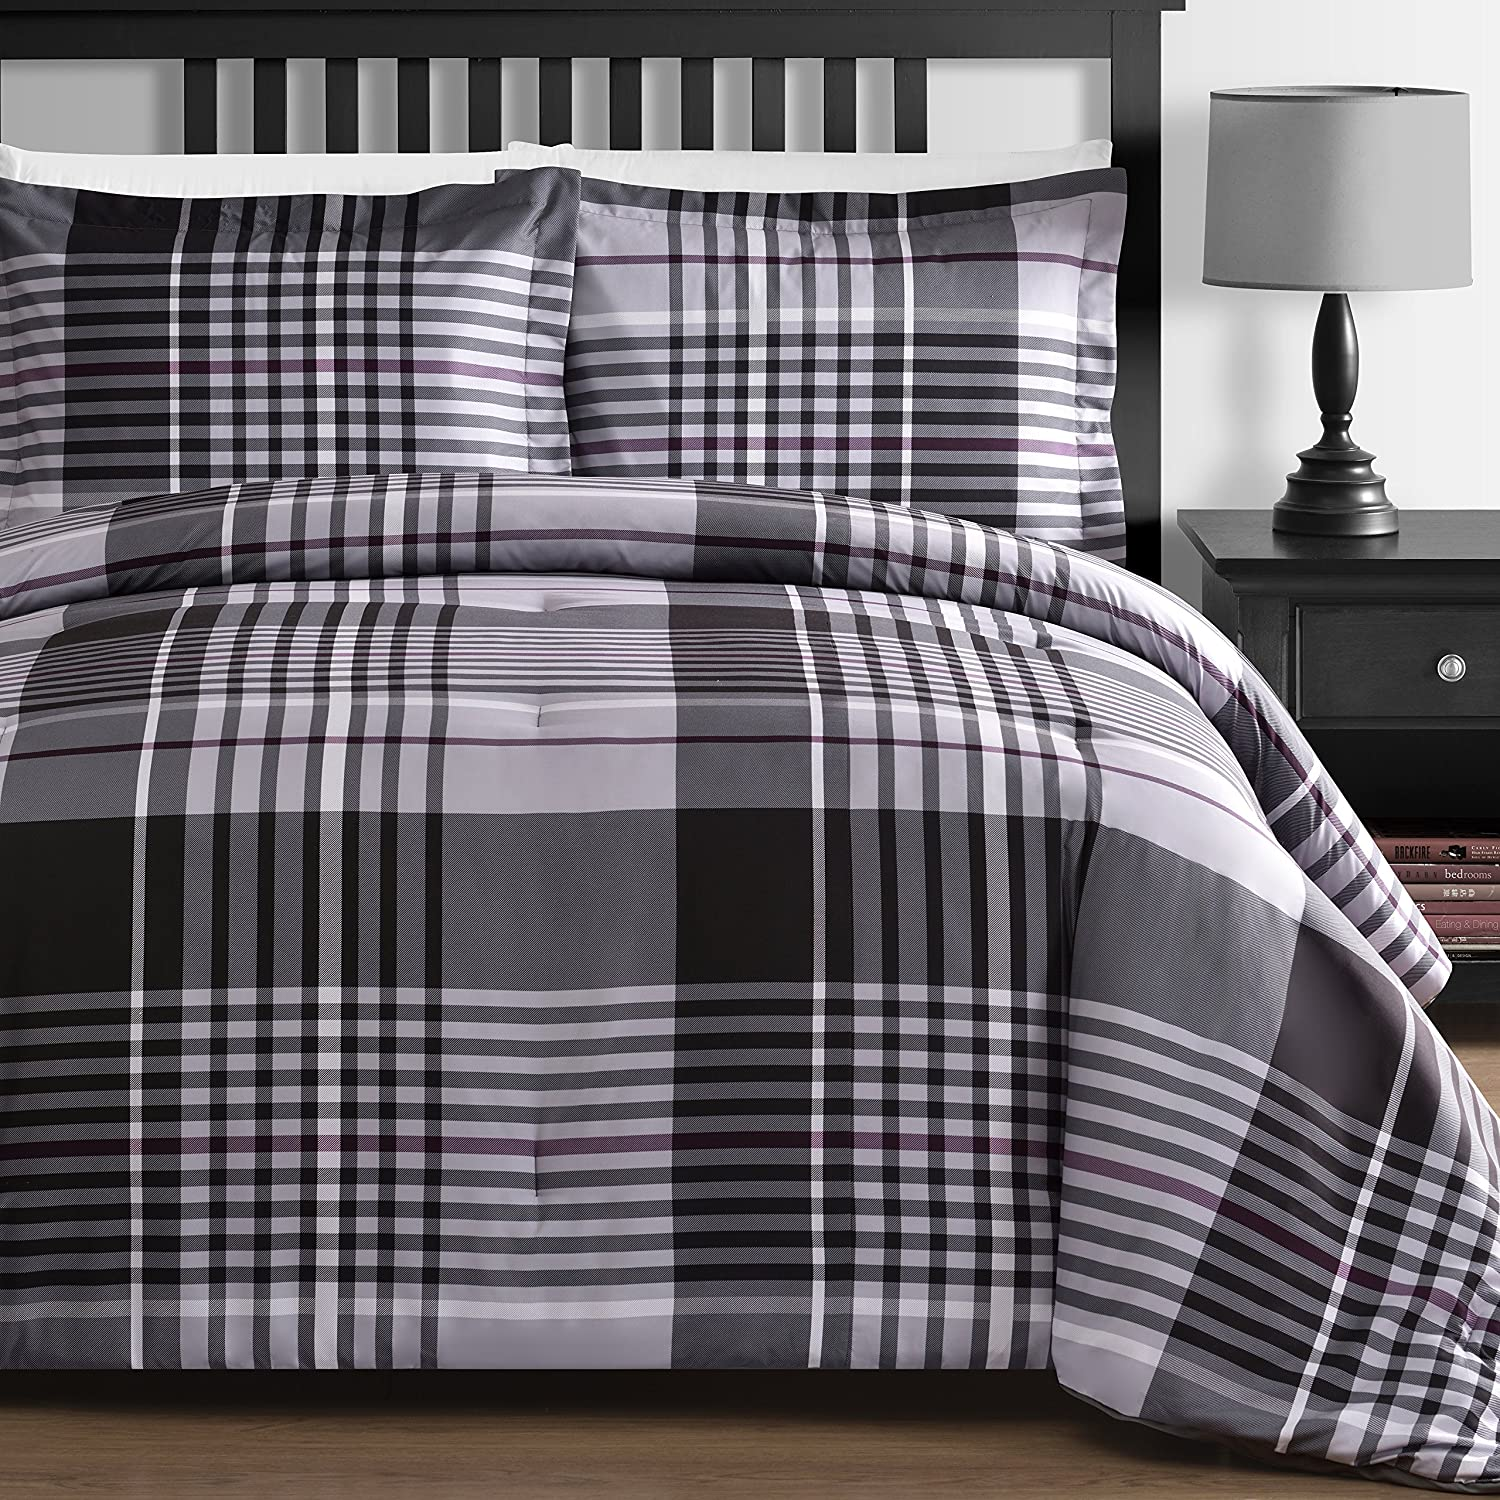 P&R Bedding 3 Piece Plaid Down Alternative Comforter Set in Gray